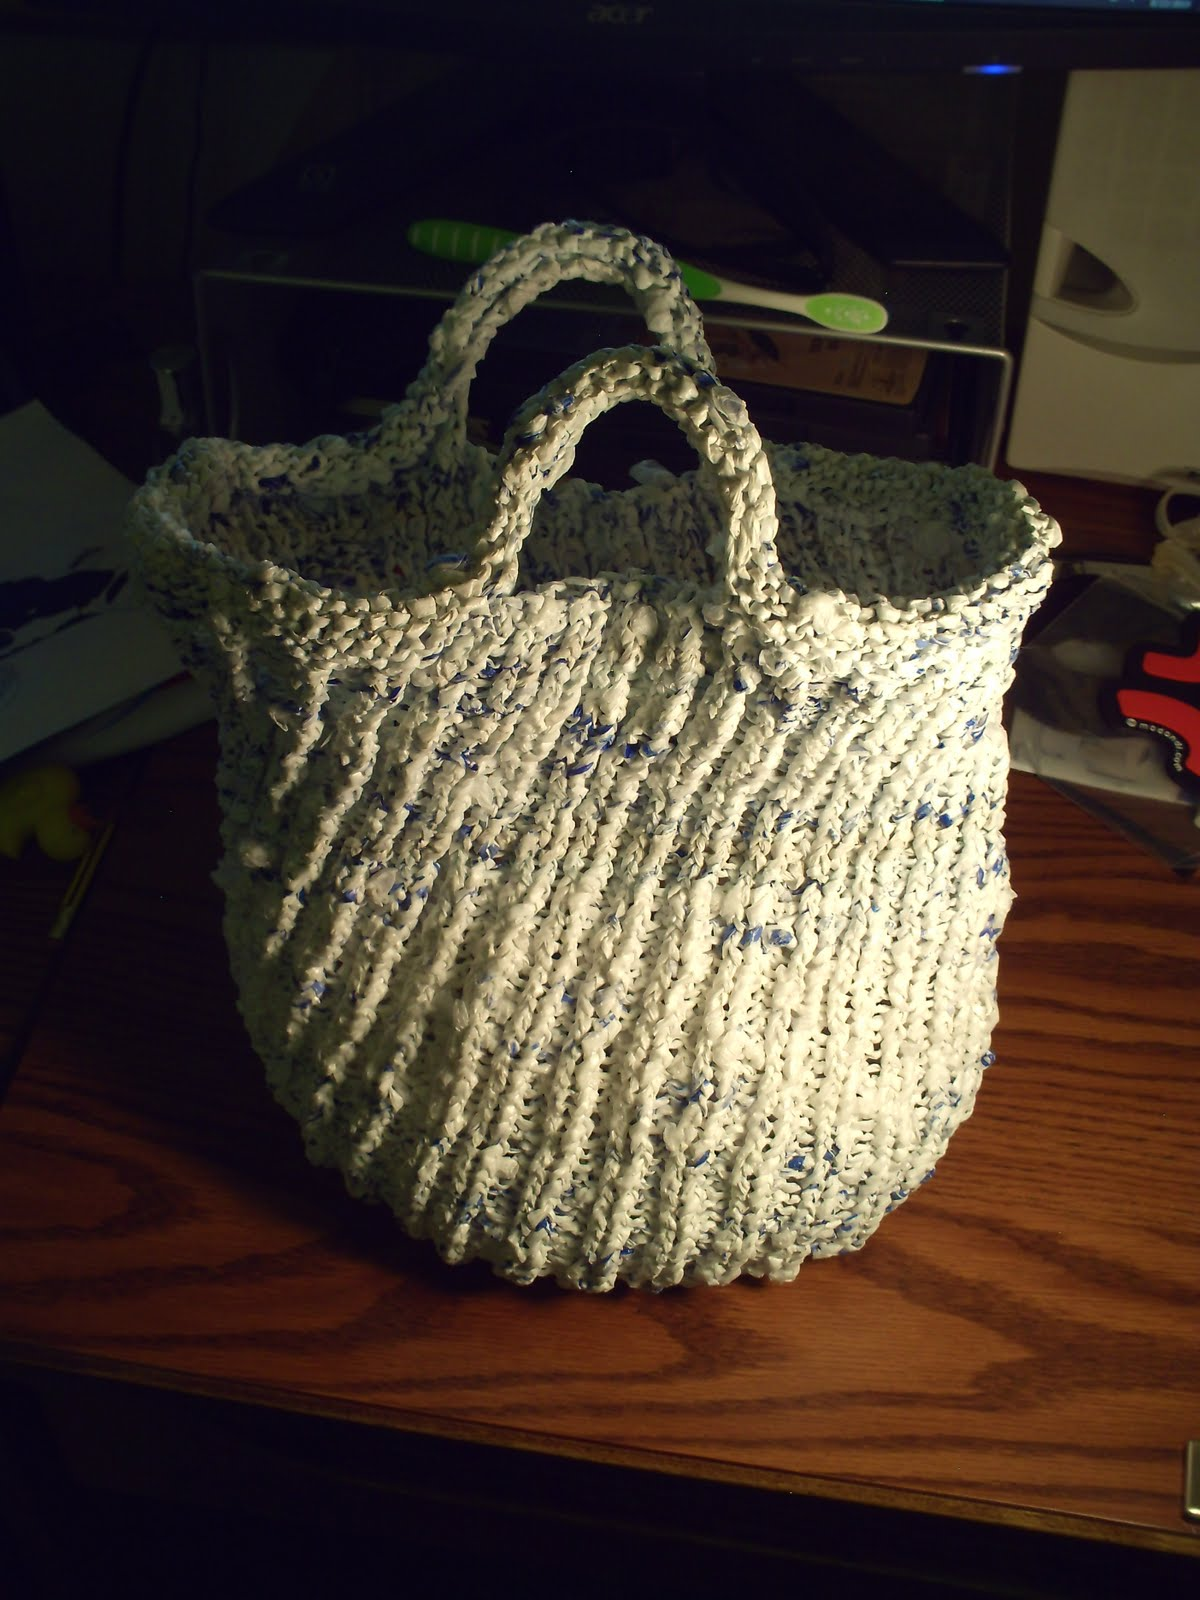 Garden of Forking Paths: Plarn Knit Bag Pattern